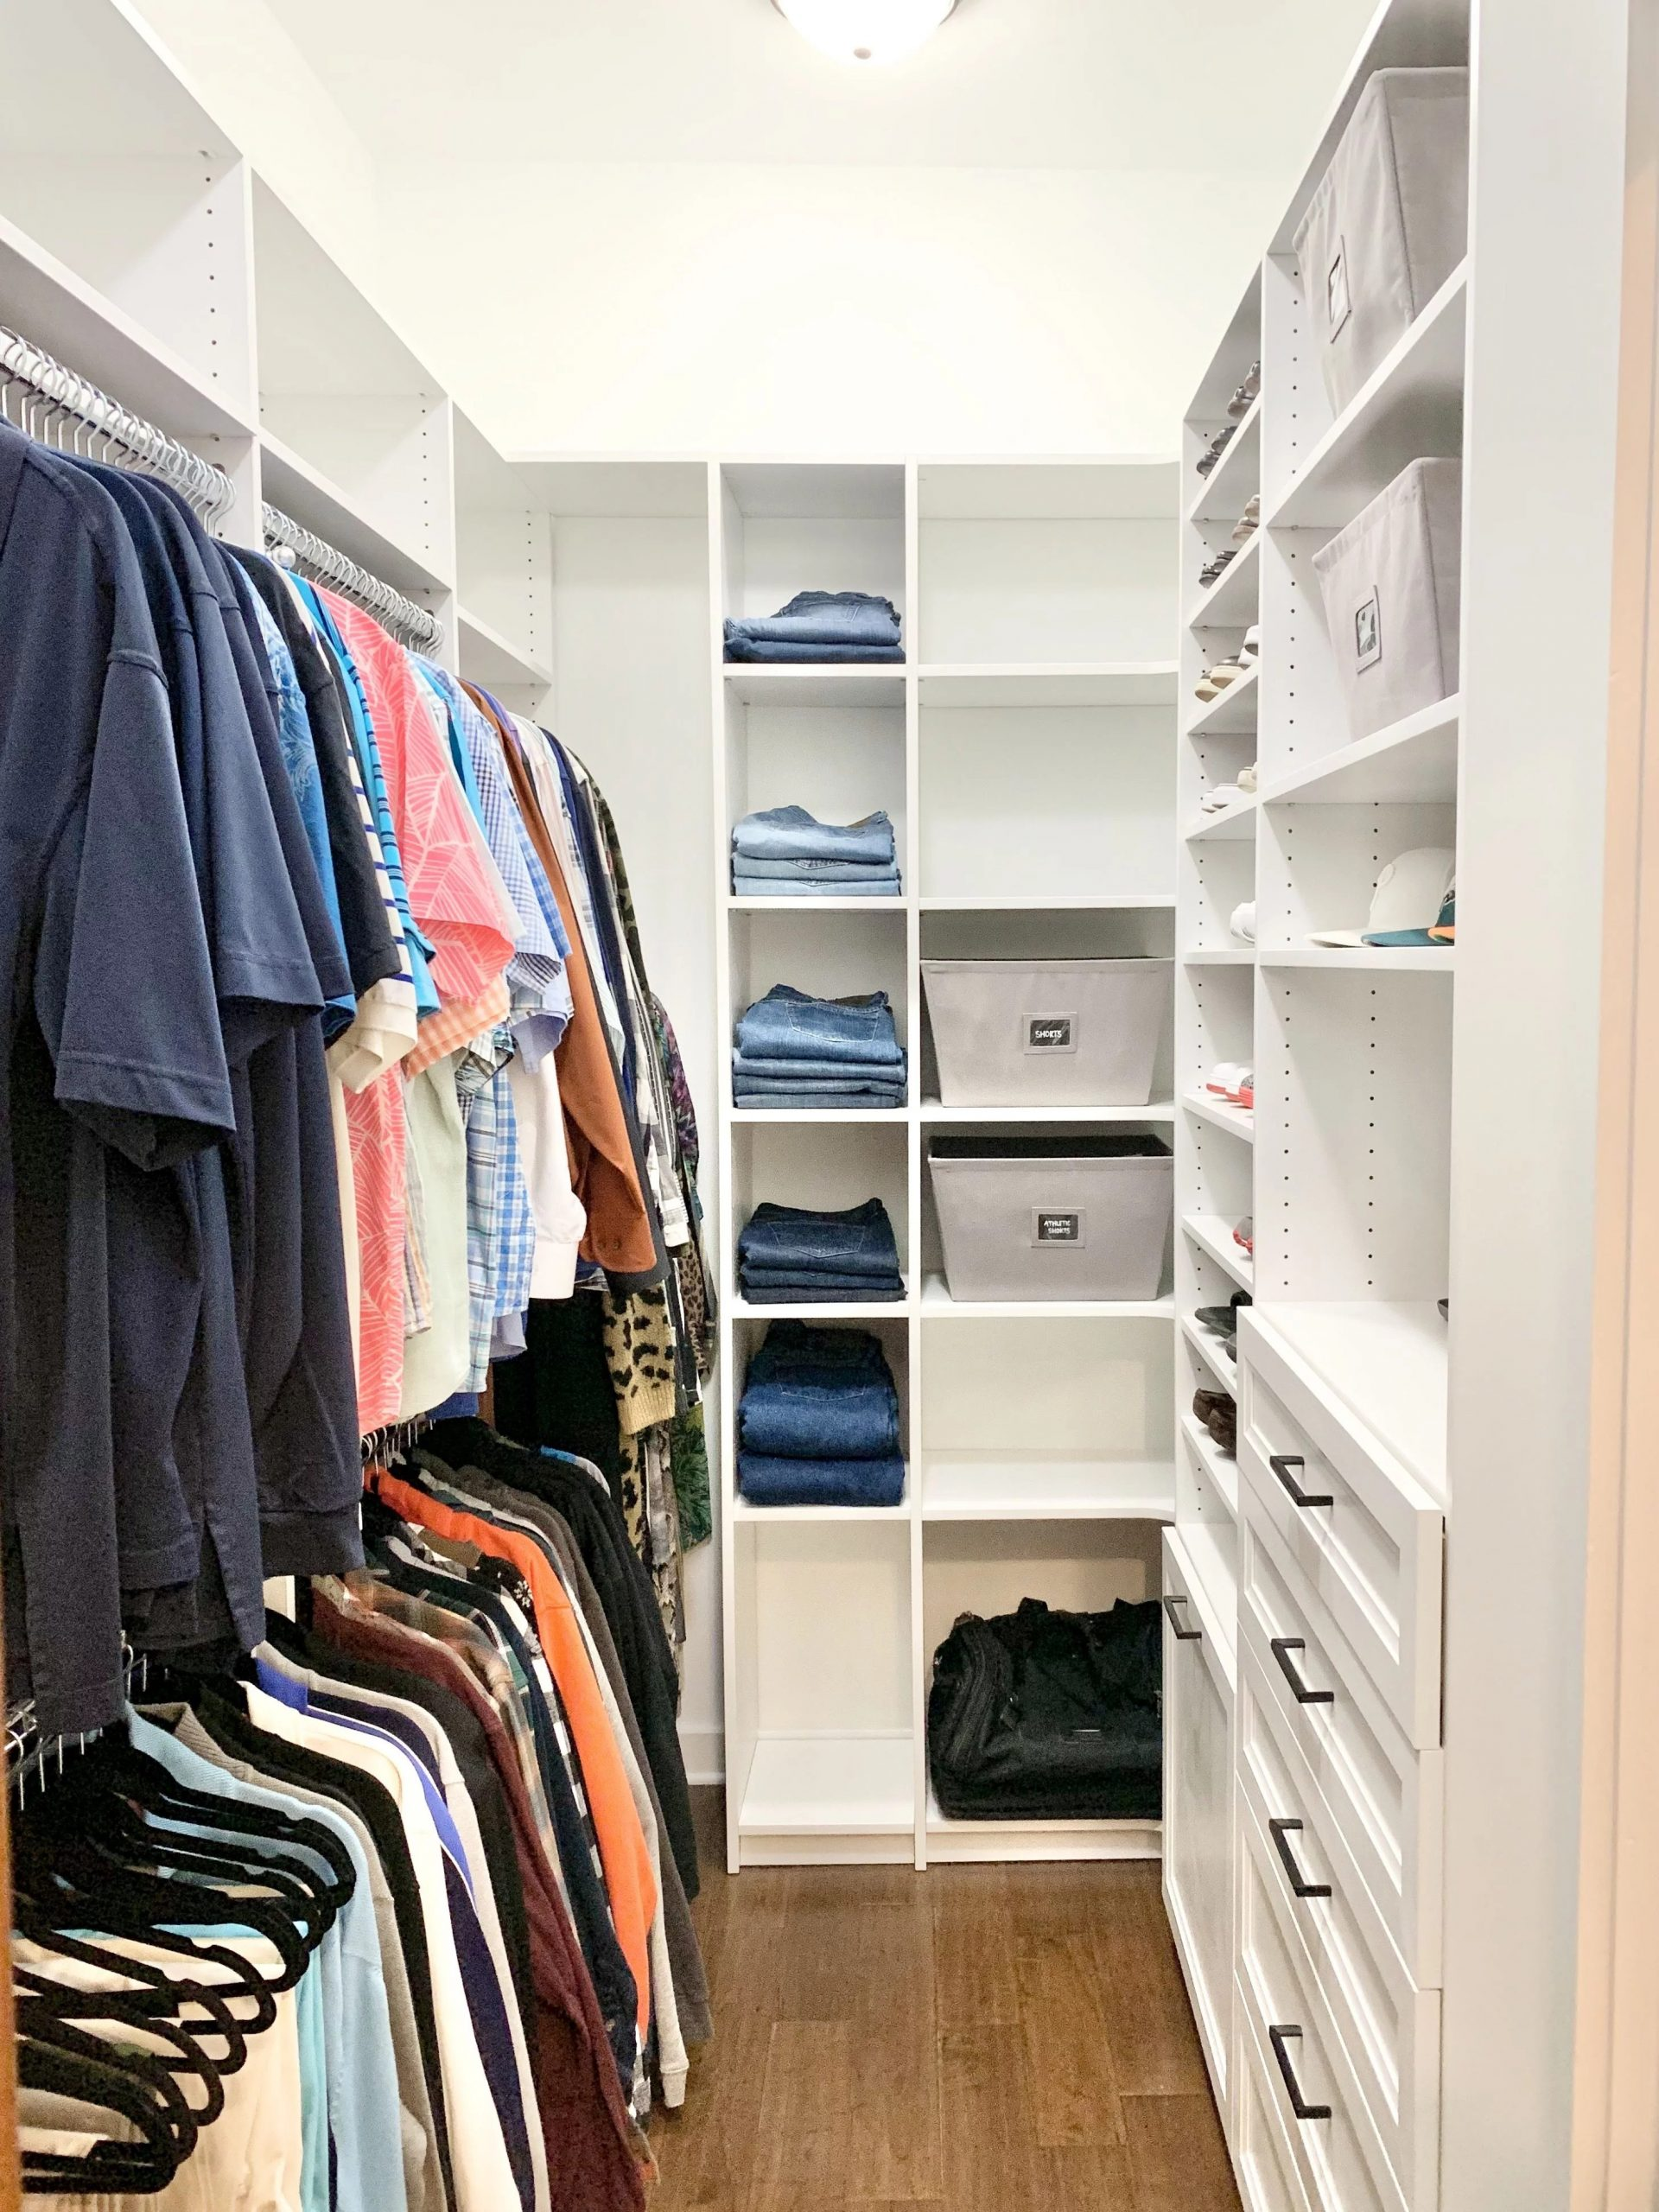 Organized Closets With a Place for Everything